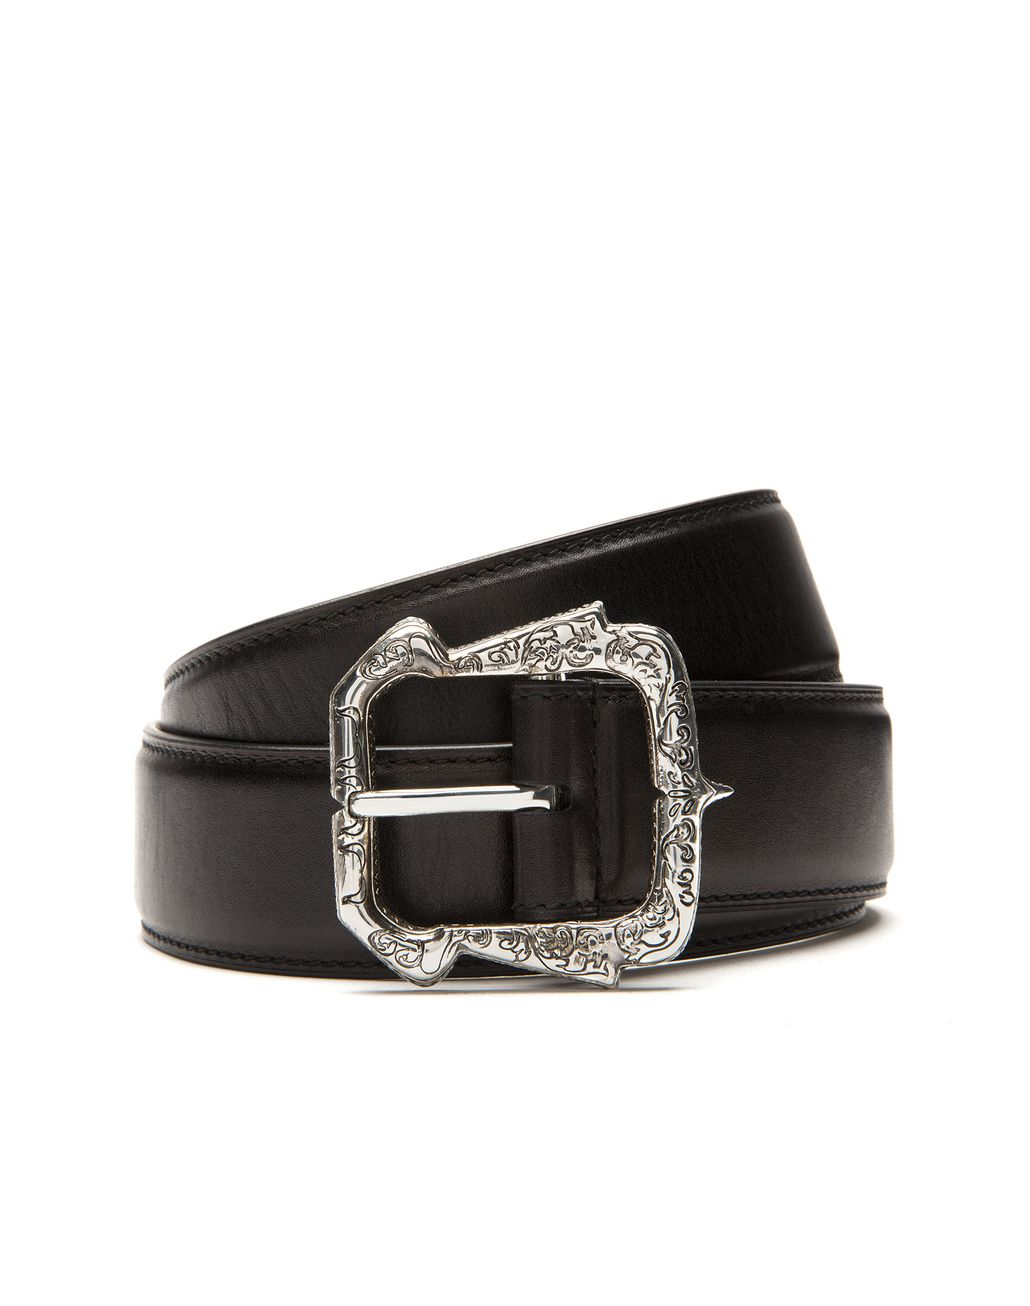 BRIONI Black Belt in Calfskin Leather with Filigree Buckle Belt U r